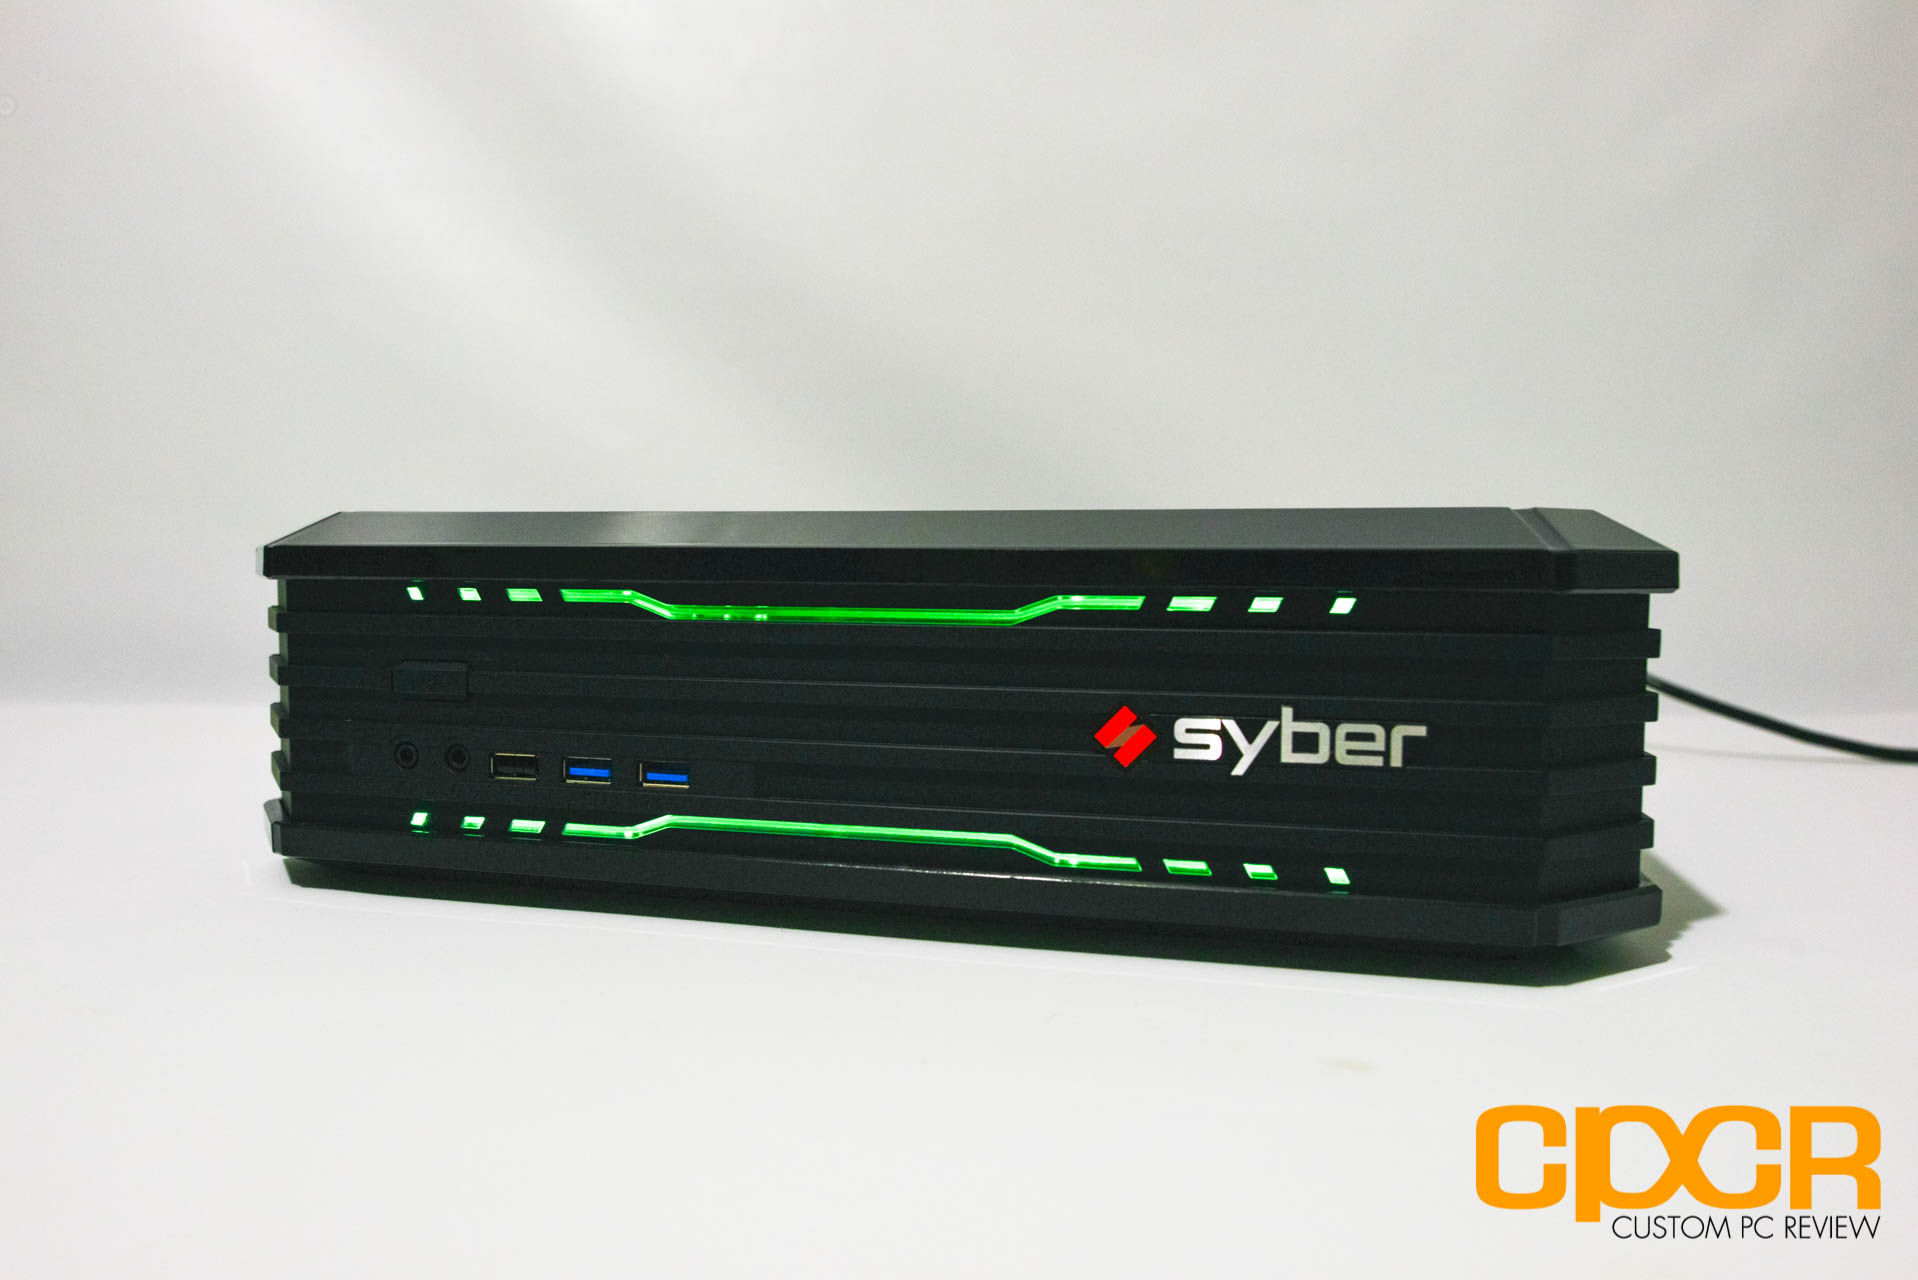 Review: Syber Vapor Xtreme Gaming PC Console | Custom PC Review